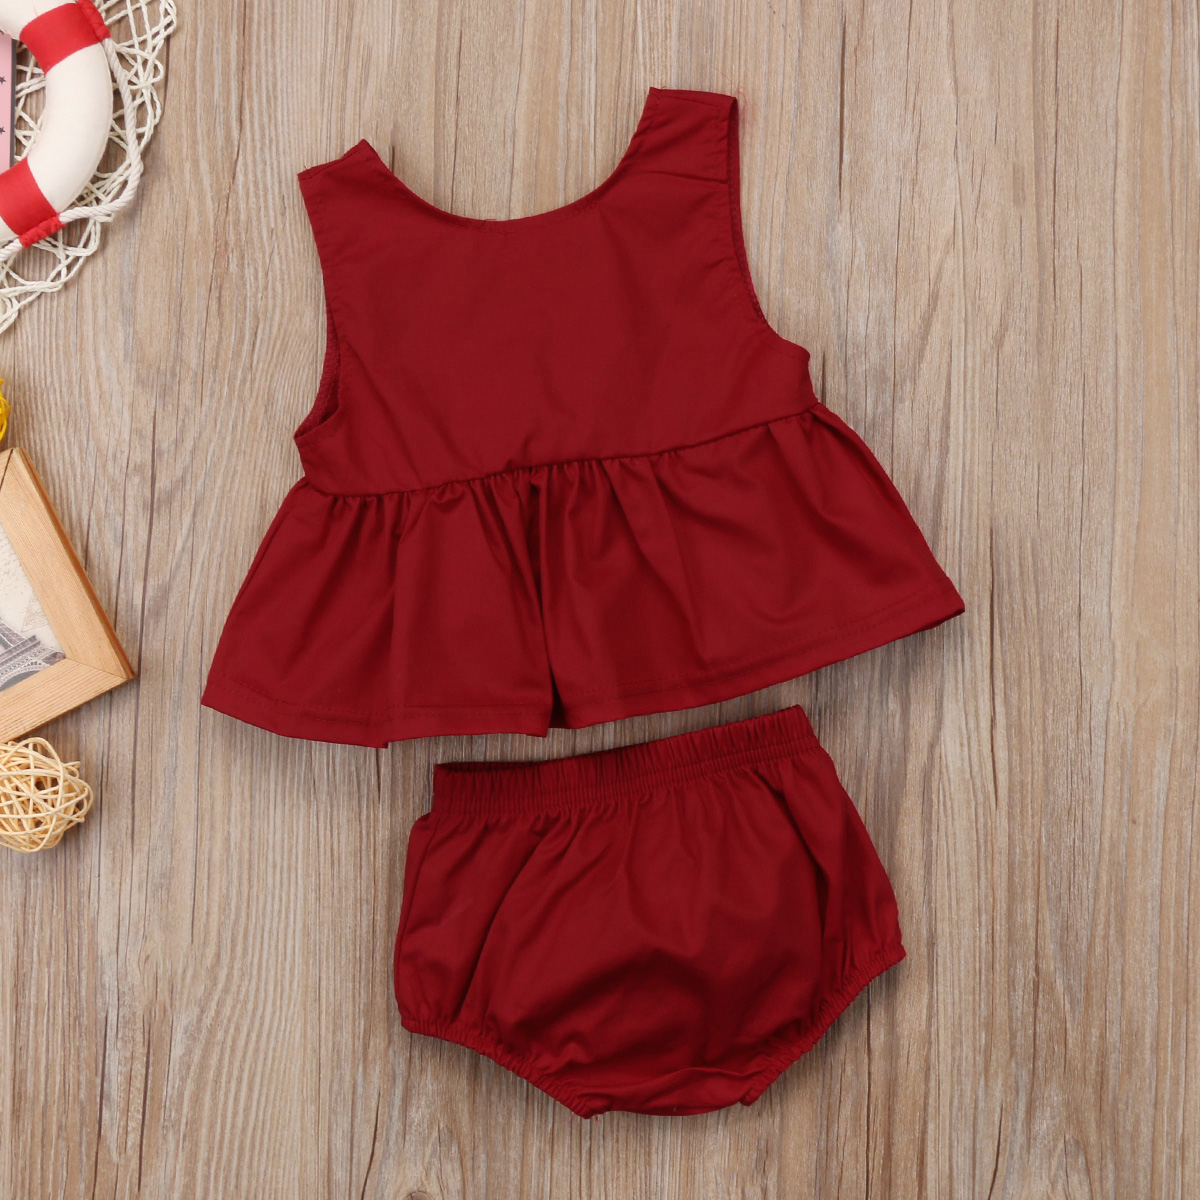 11d77cfdc3ed4 Toddler Baby Girl Claret-Red Sleeveless Vest Tops T-Shirt Dress + Wine Red  Shorts Outfit Ruffle Homewear Clothes